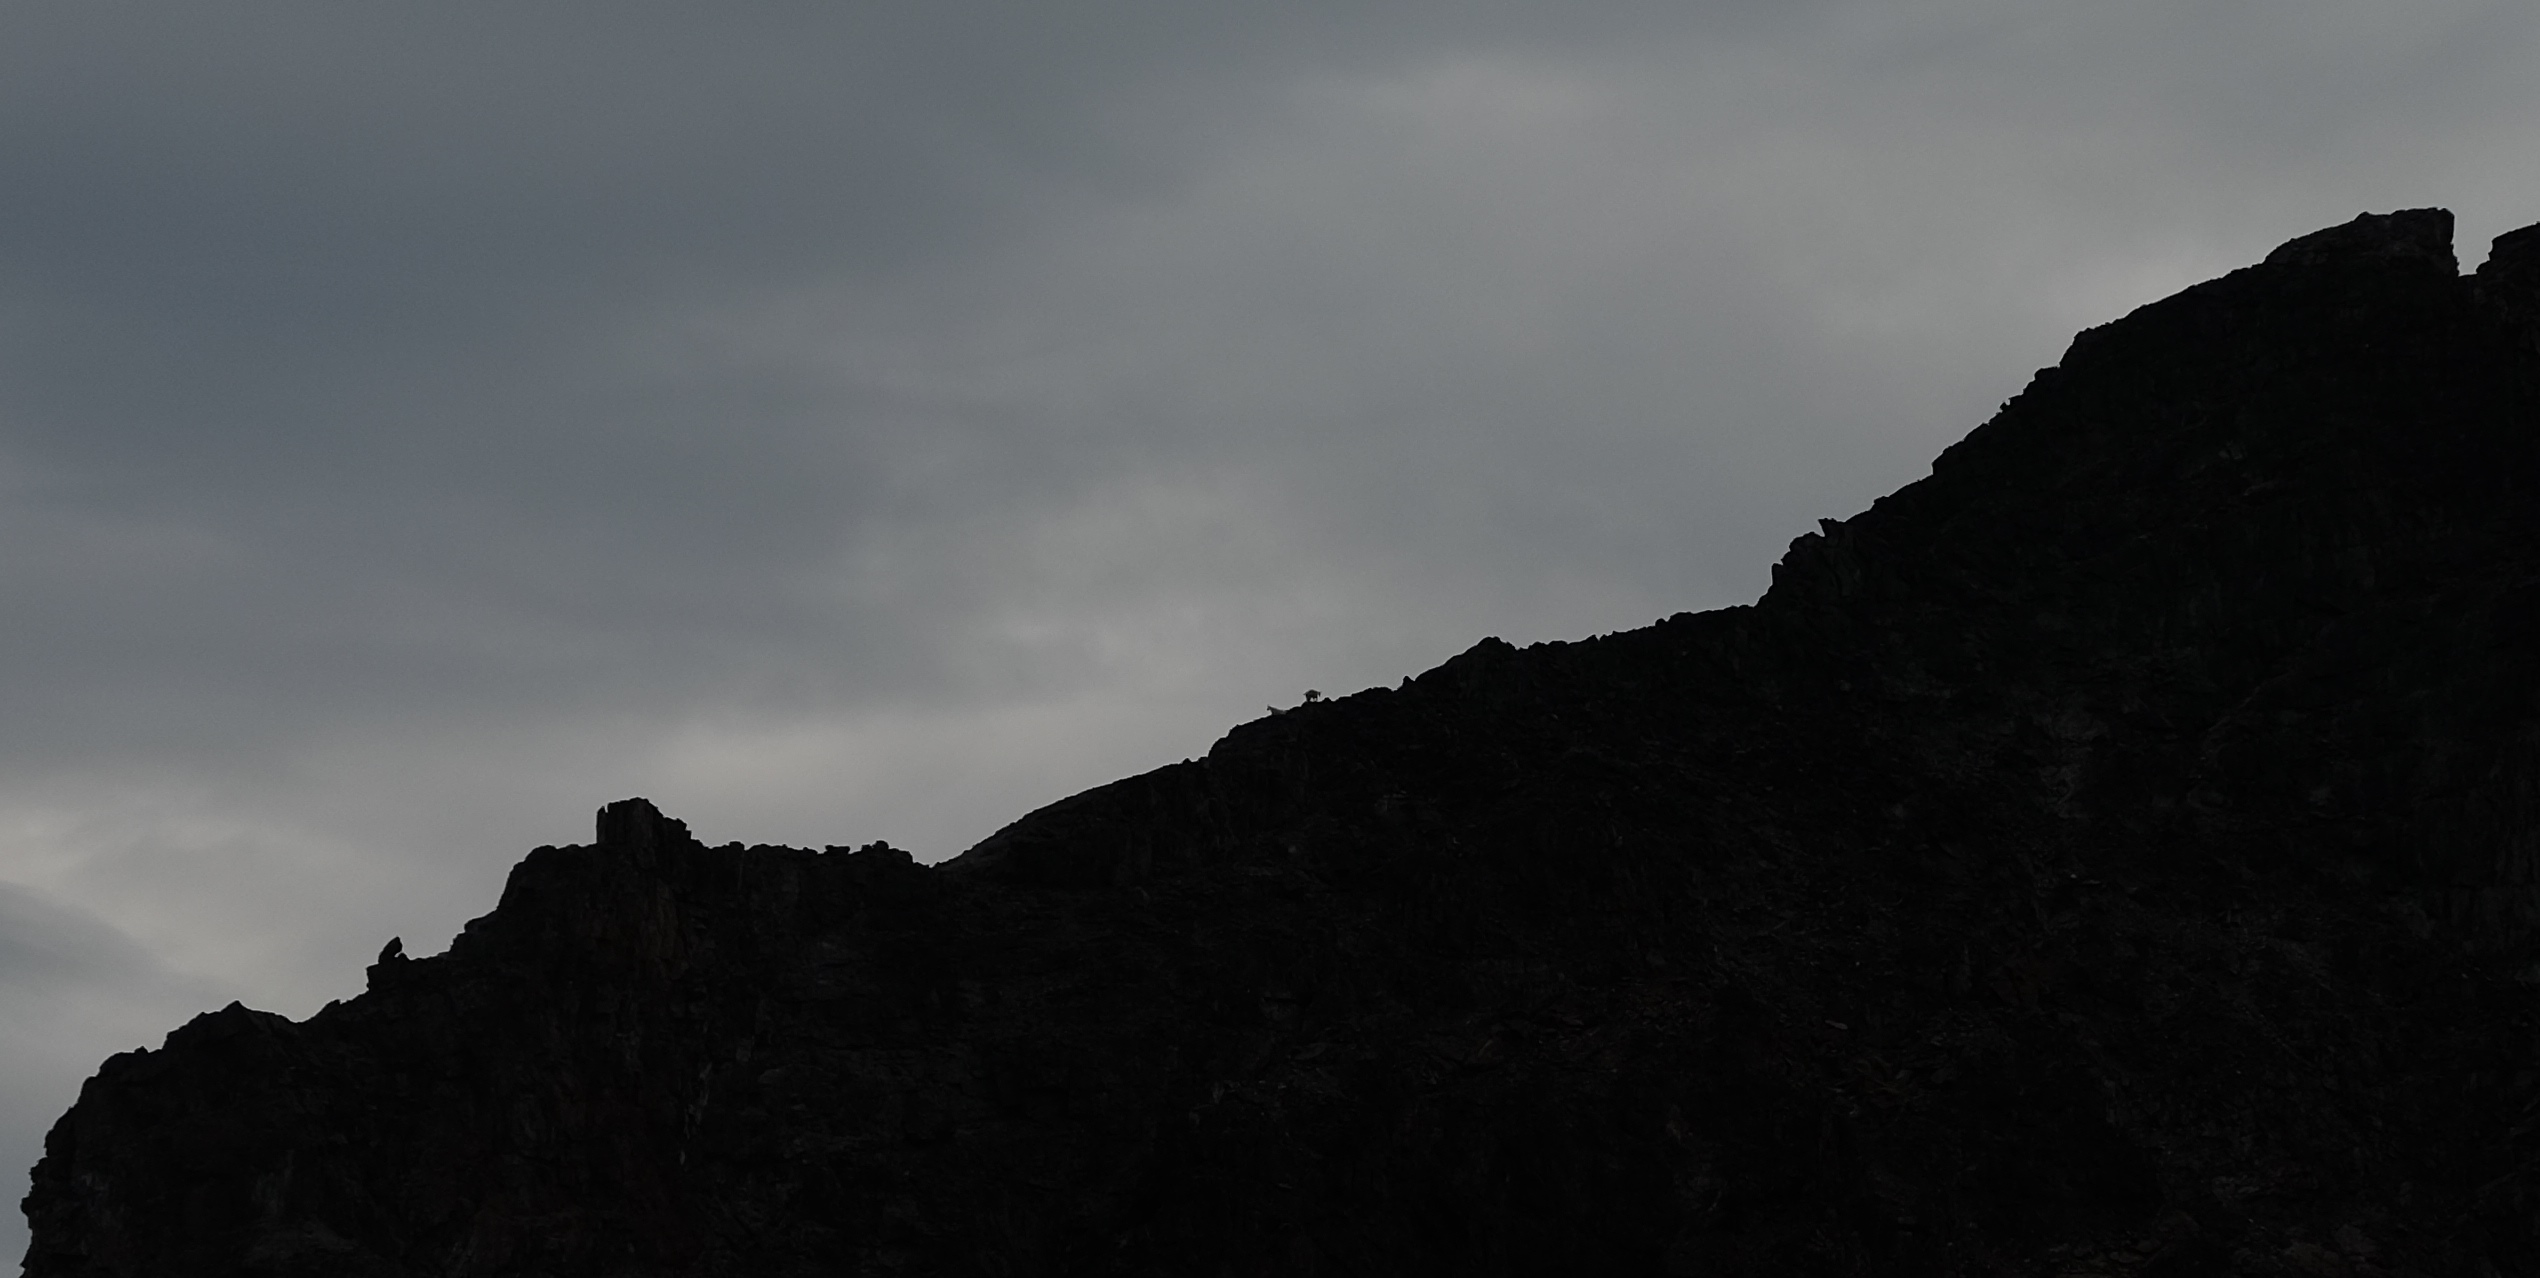 Mountain goats silhouetted on the ridge N of Truax.